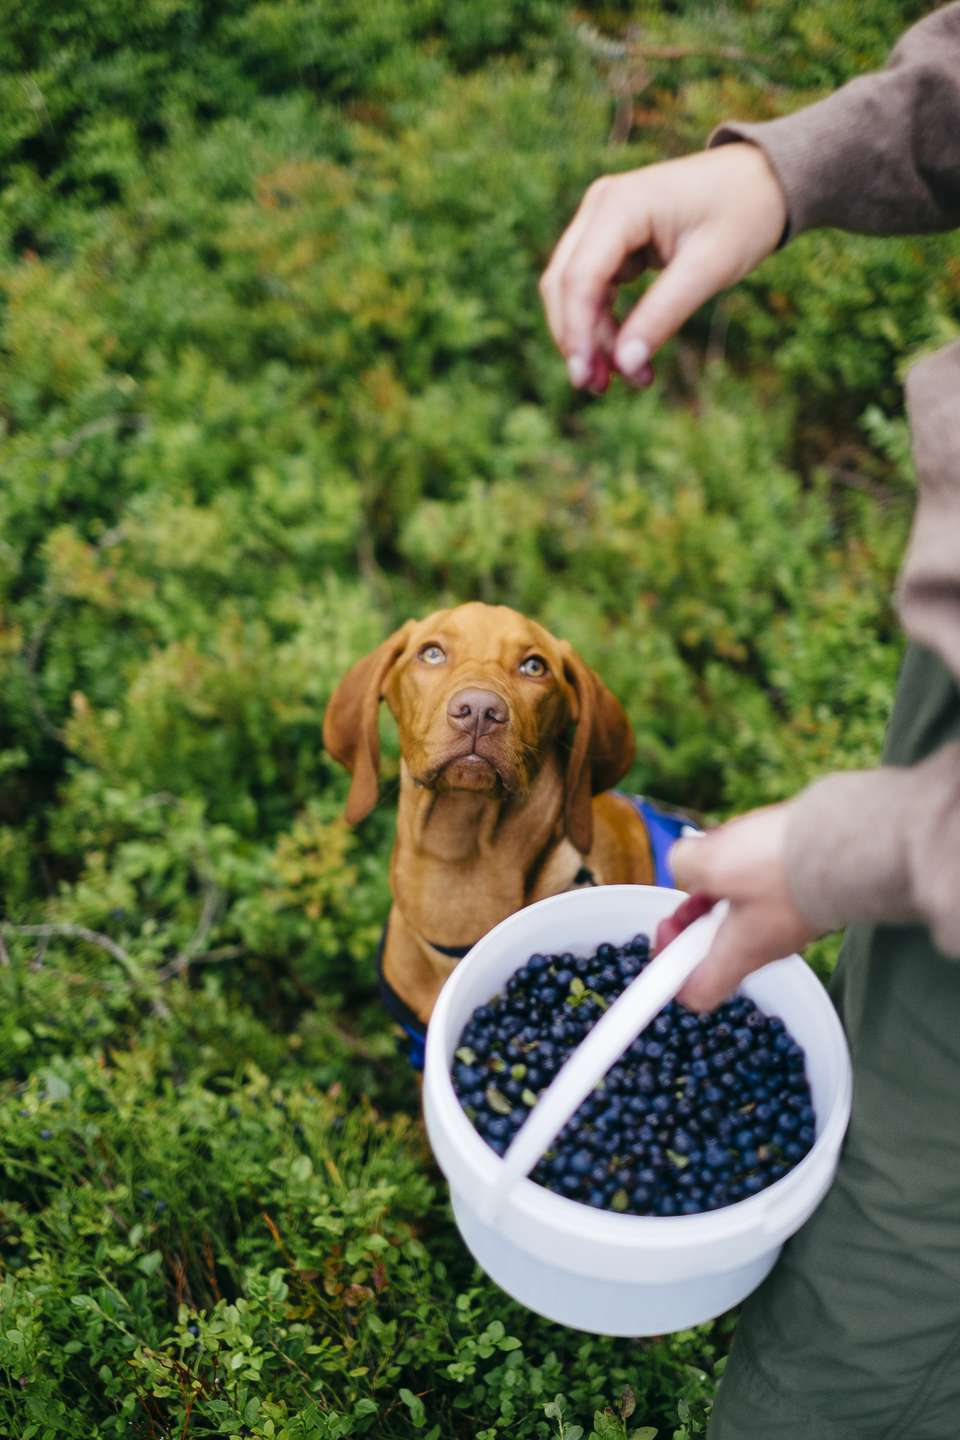 Vizla puppy watching his master pick blueberries in a field